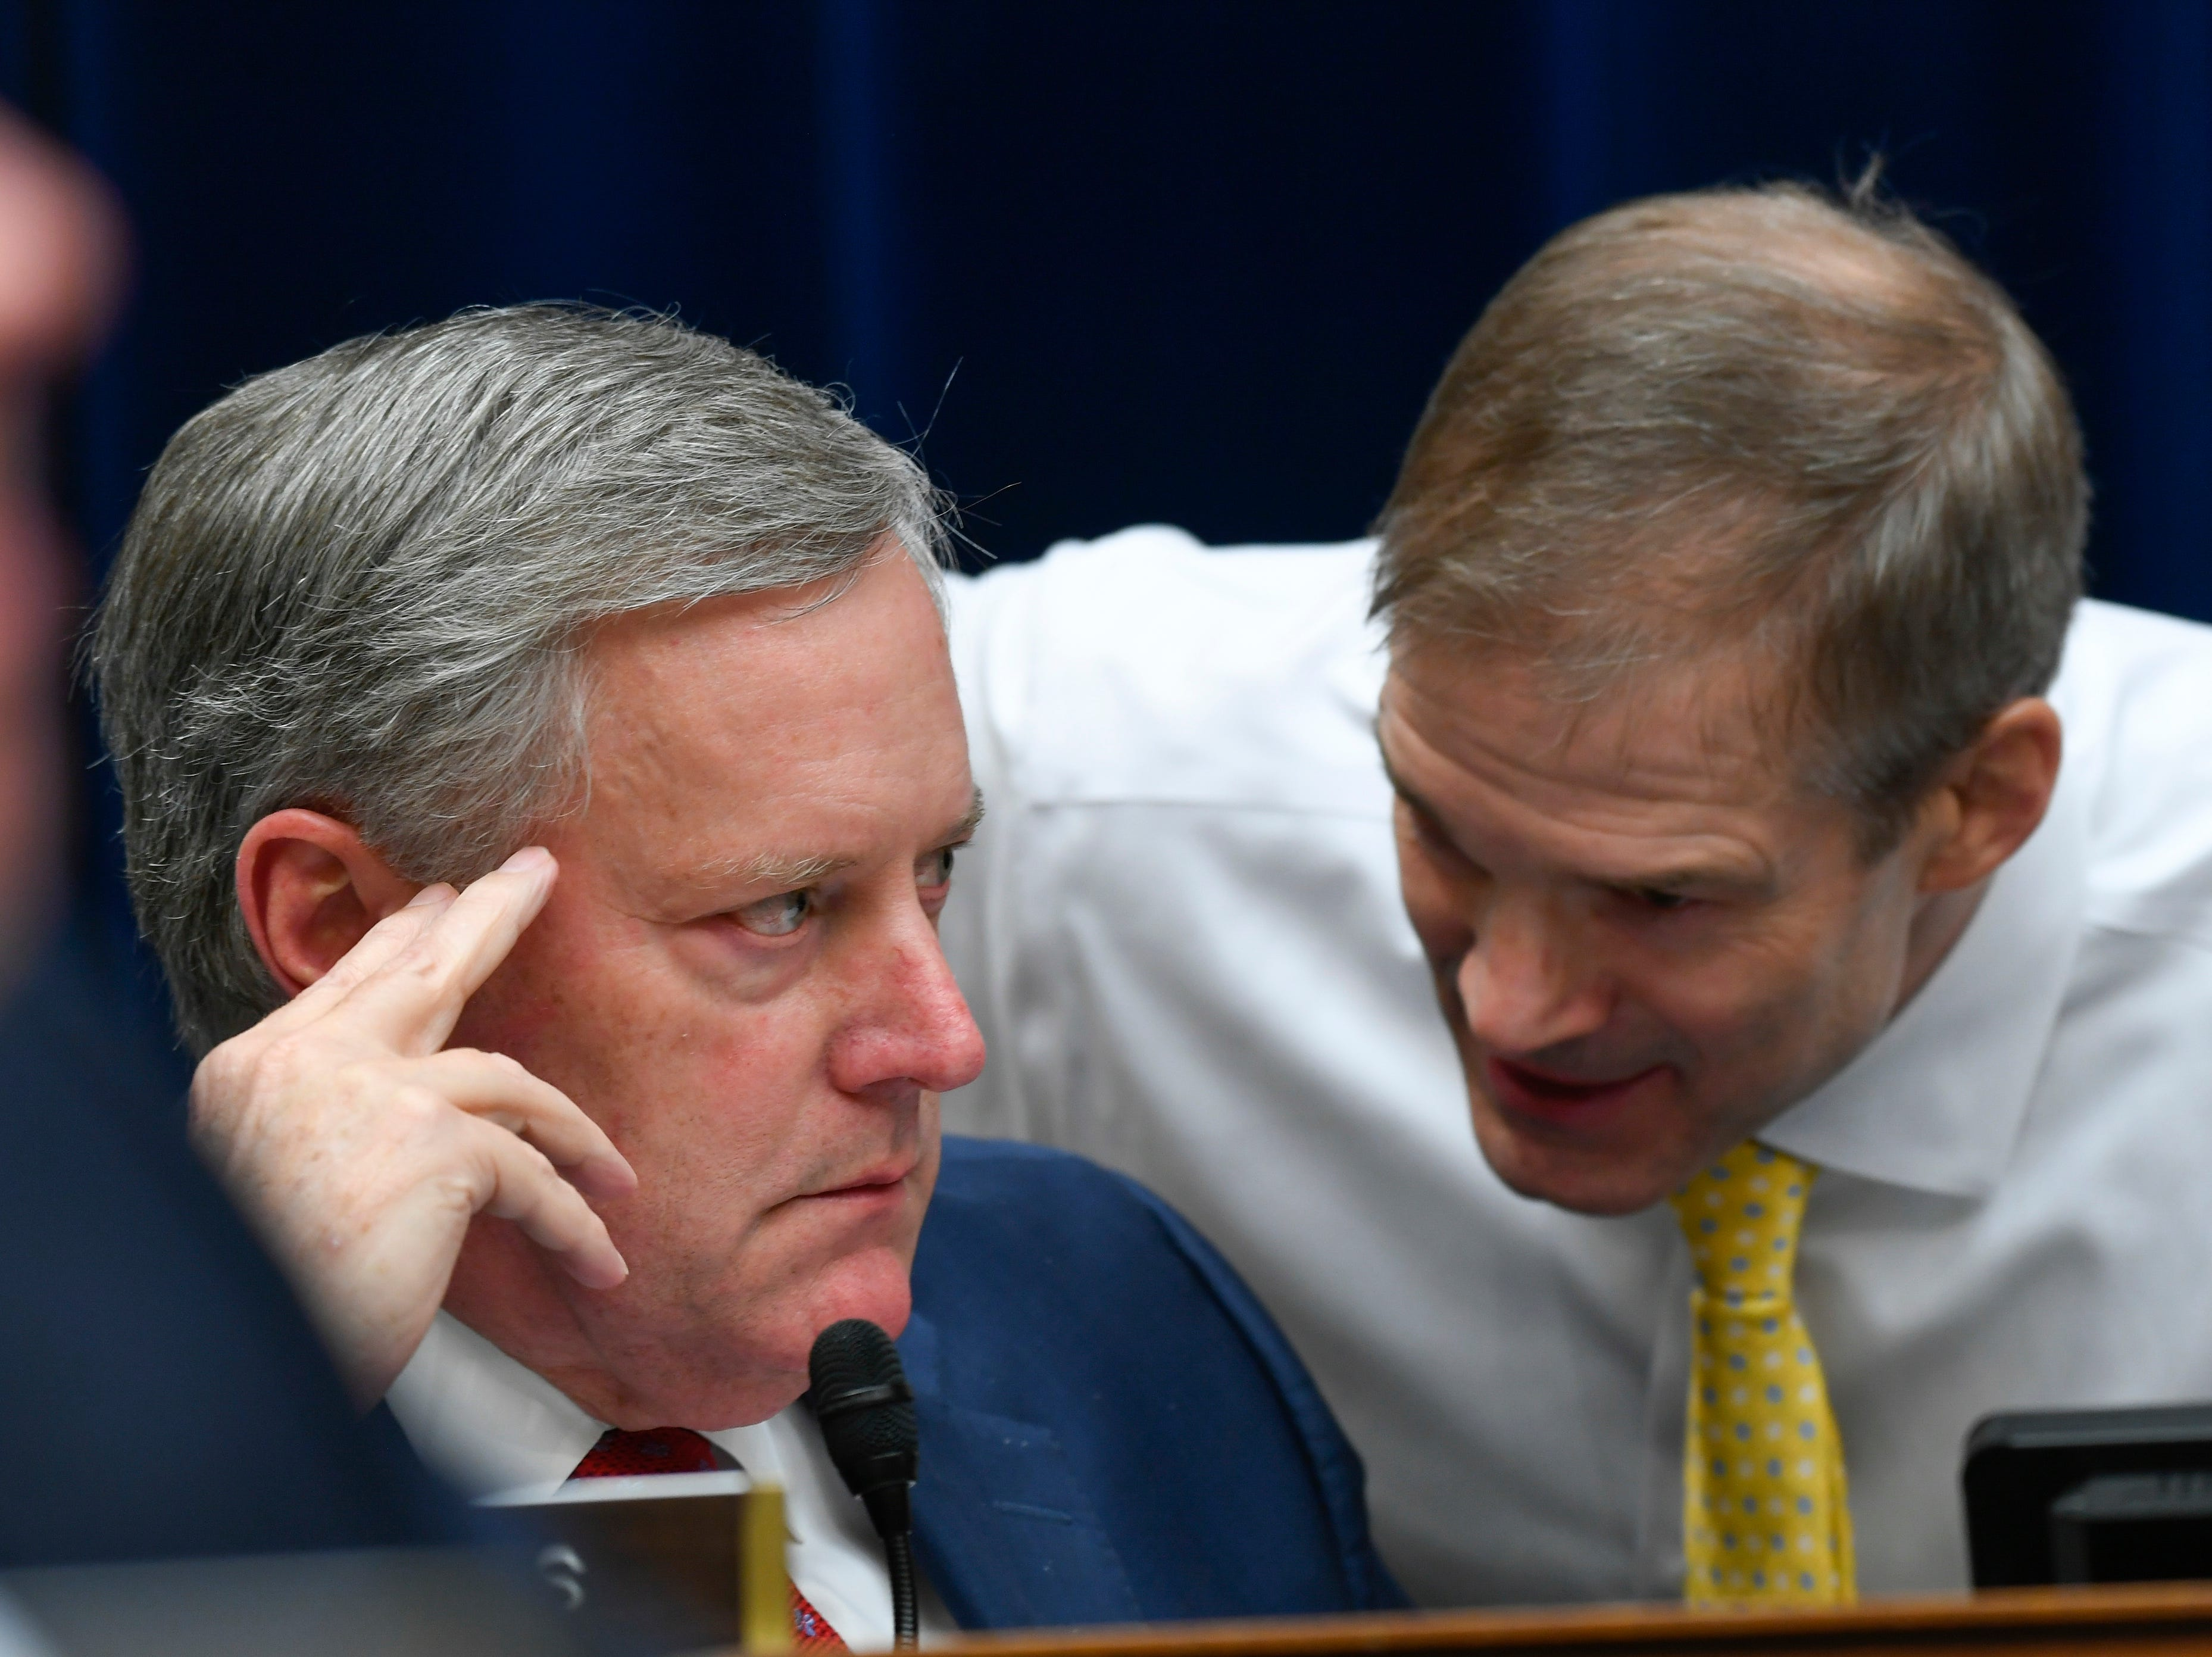 Rep. Mark Meadows (R- NC), left, listens to Rep. Jim Jordan (R-OH), the House Oversight Committee's Republican leader, following a heated exchange after remarks by Rep. Rashida Tlaib (D-MI) as she questioned Michael Cohen, President Donald Trump's longtime personal attorney, before the House Committee on Oversight and Reform on Feb. 27, 2019 in Washington.